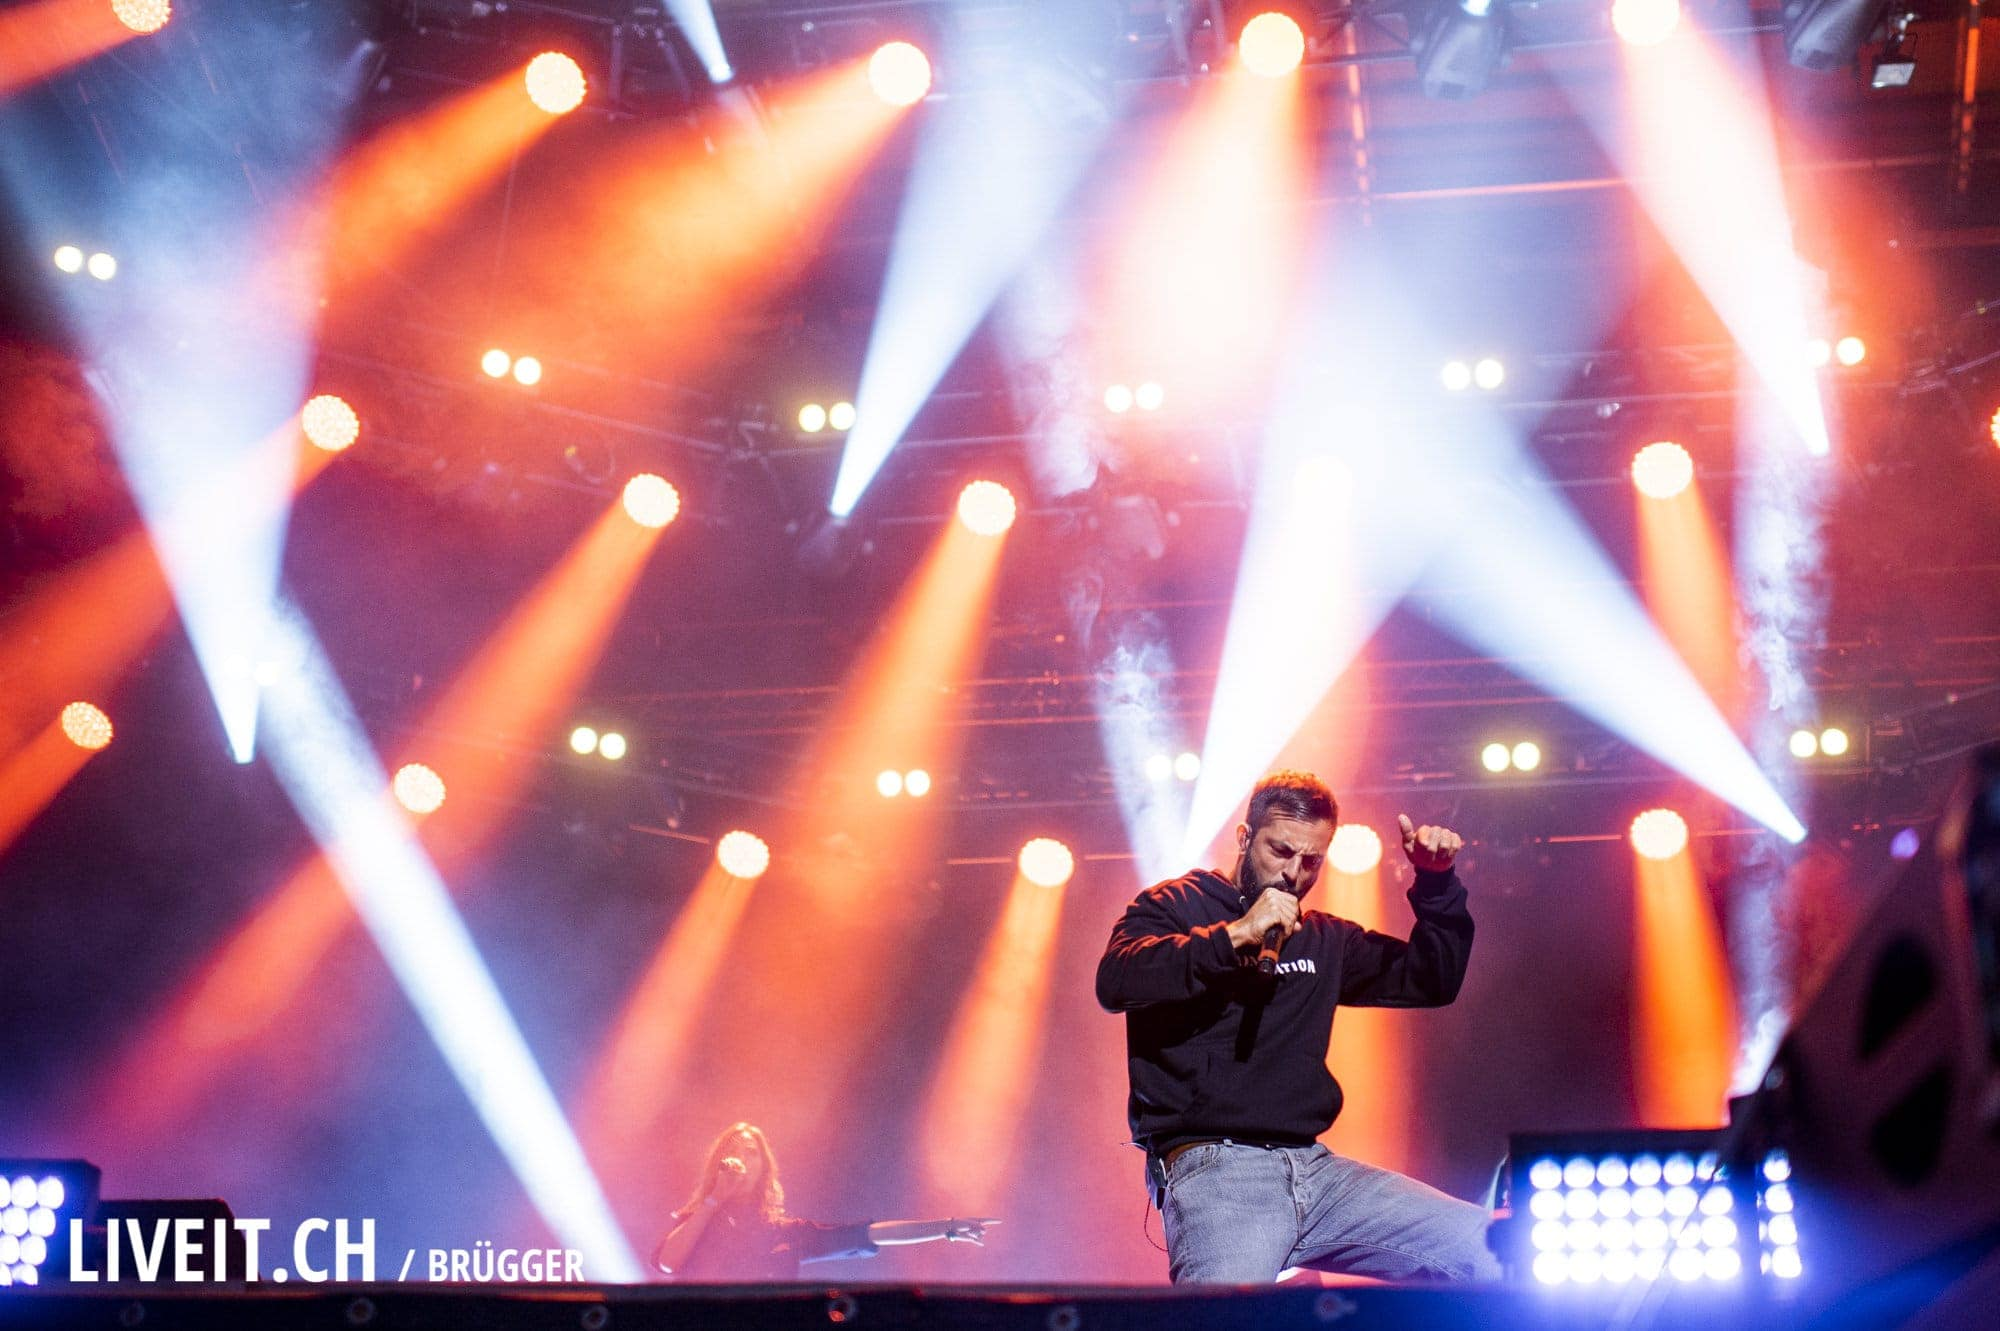 Bligg fotografiert am Seaside Festival 2018. (Dominic Bruegger for liveit.ch)